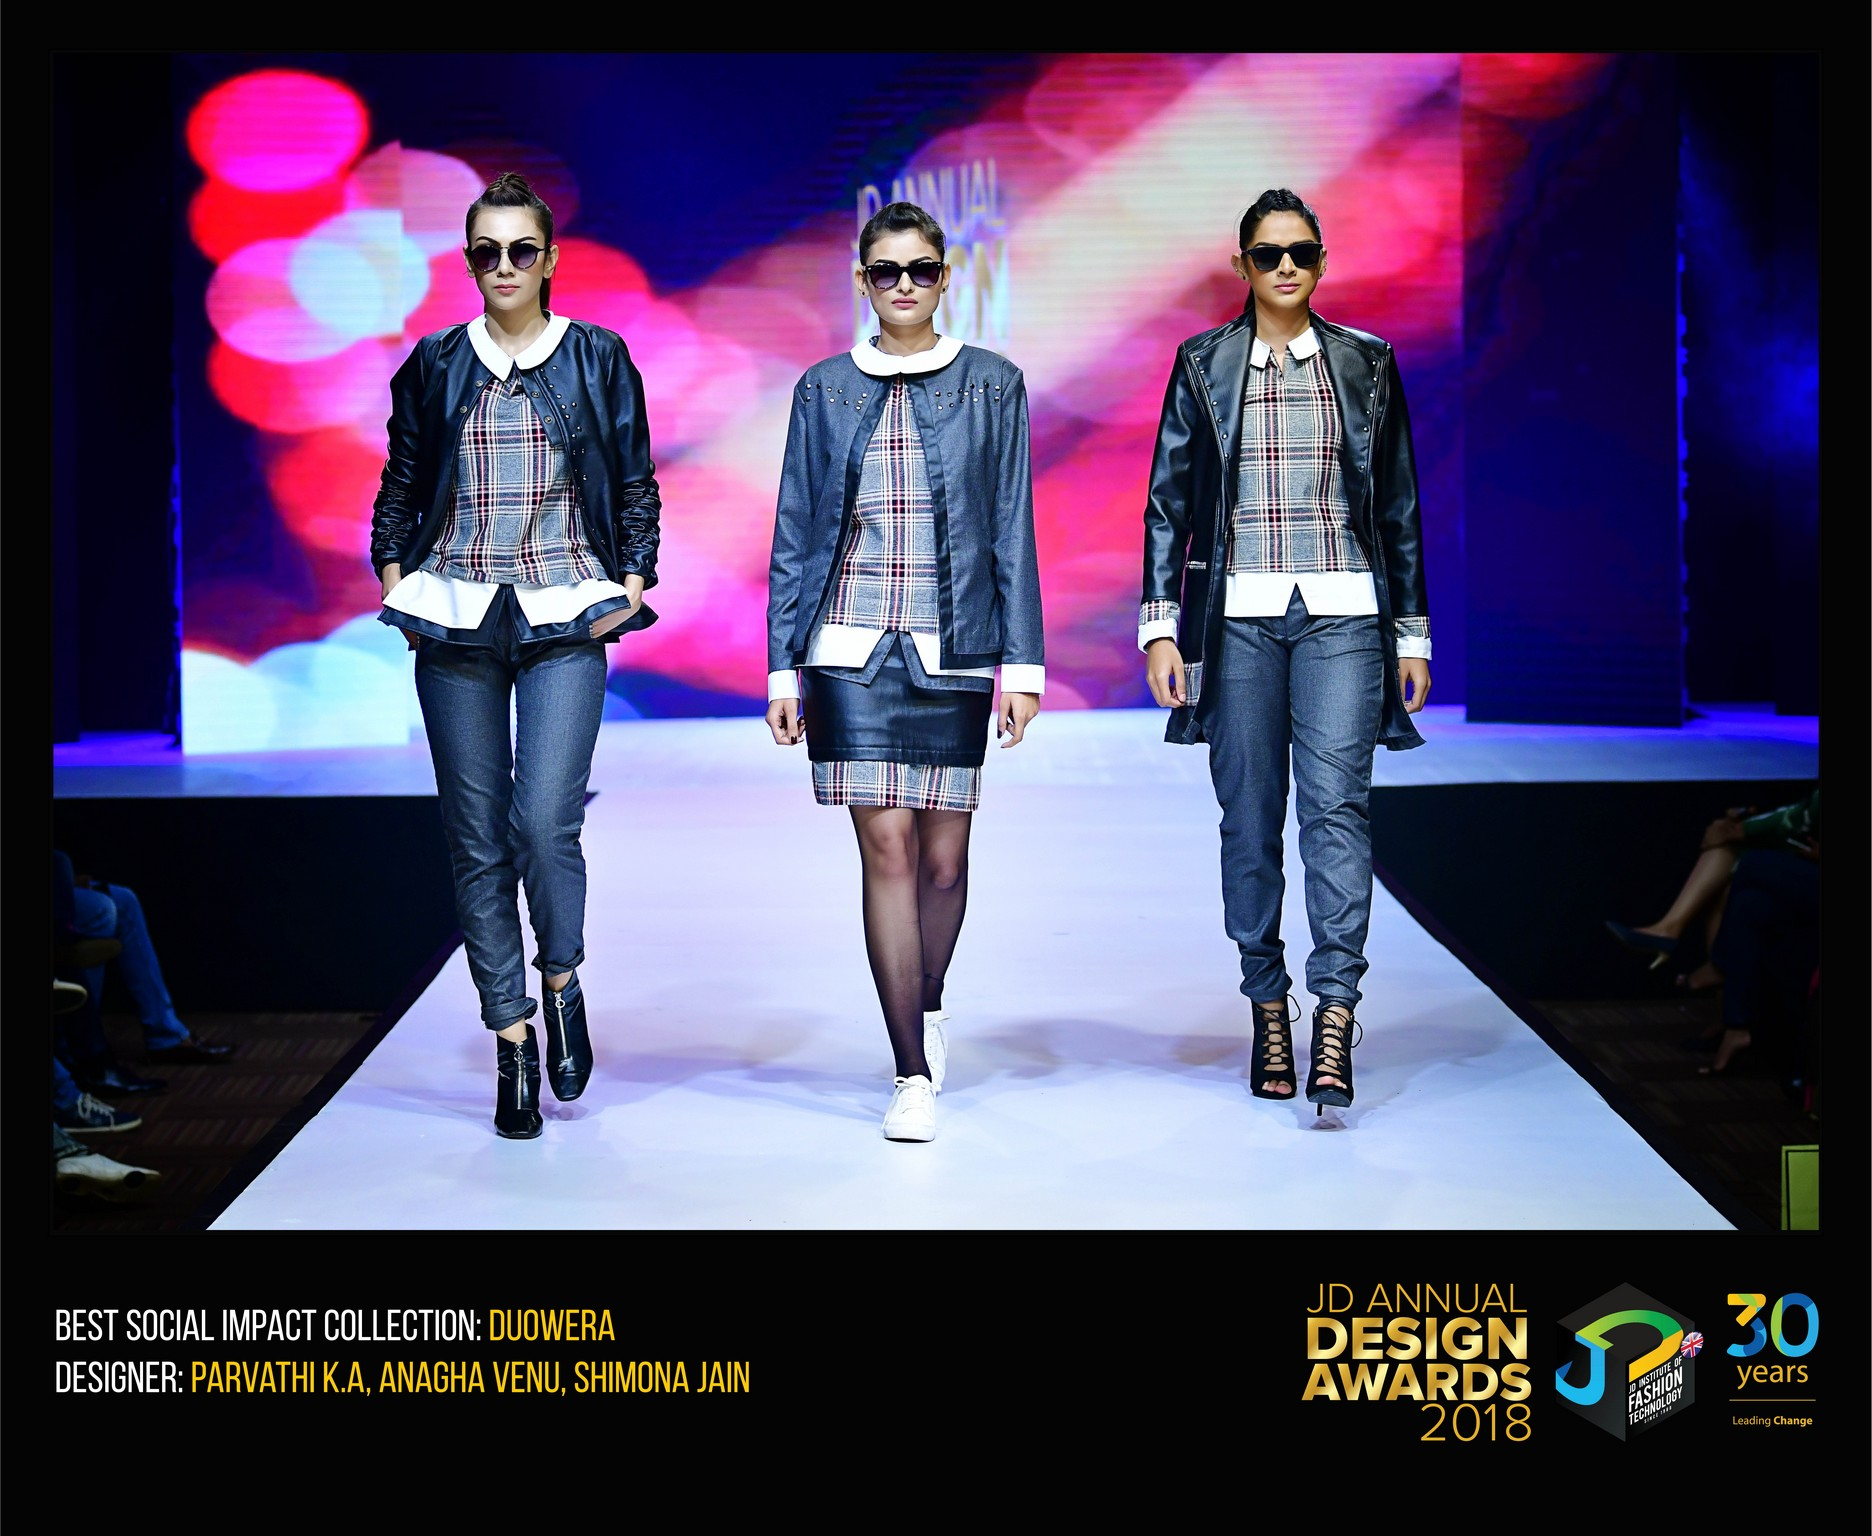 Duowera – Change – JD Annual Design Awards 2018 | Designer: Parvathi, Anagha and Shimona | Photography : Jerin Nath (@jerin_nath) duowera Duowera – Change – JD Annual Design Awards 2018 Duowera6